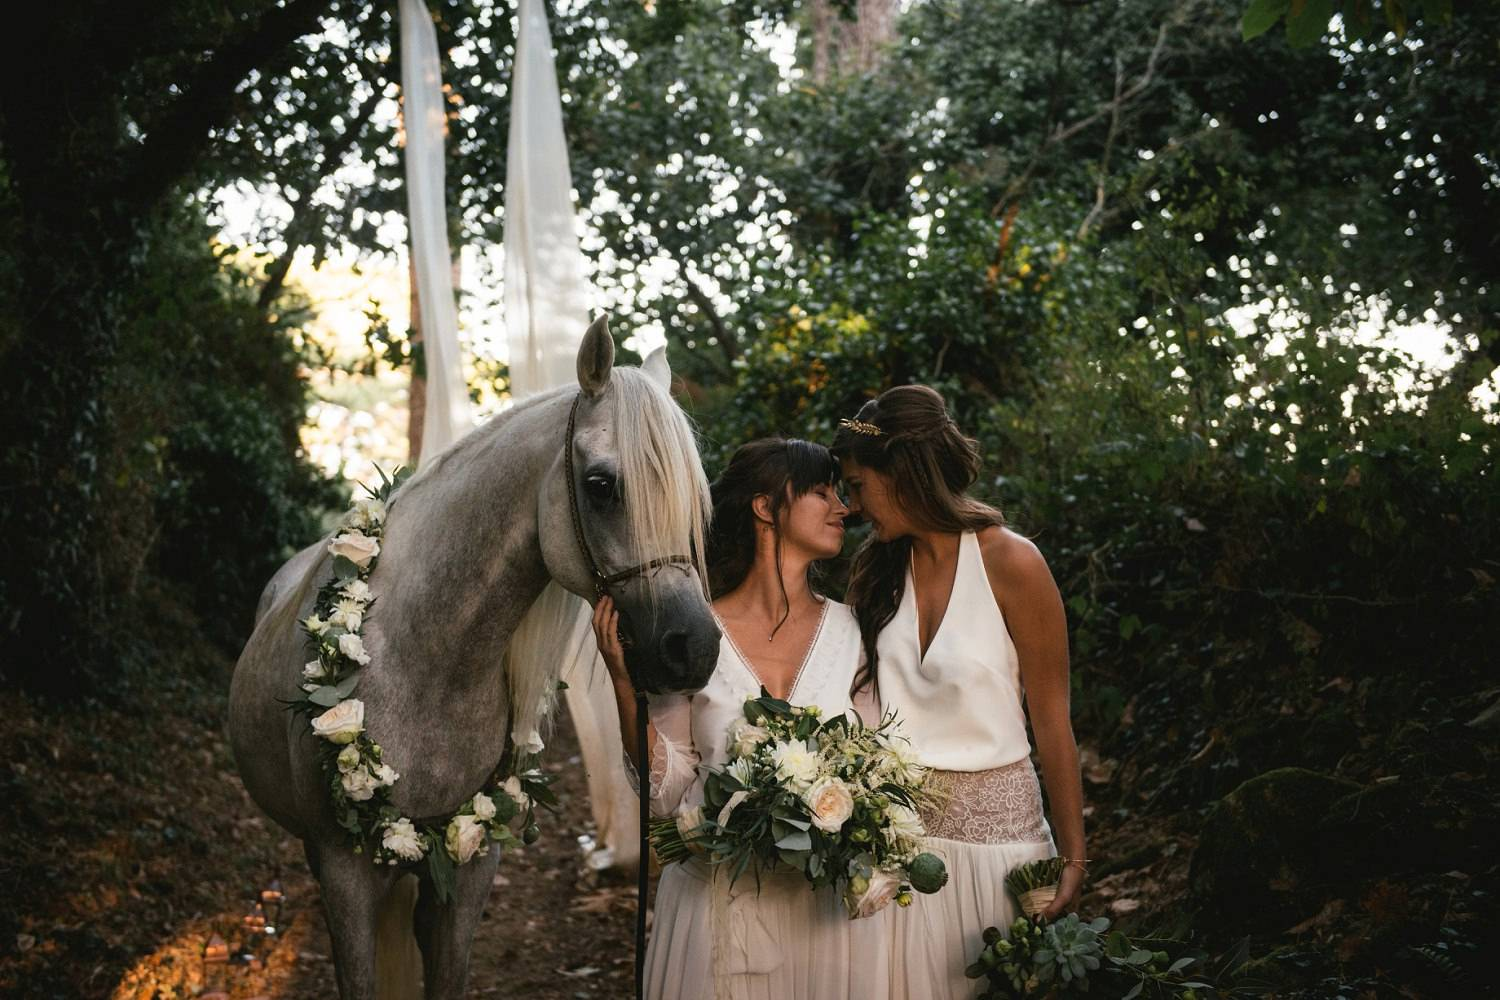 Two brides pose in a forest with an Arabian horse wearing a wreath of flowers